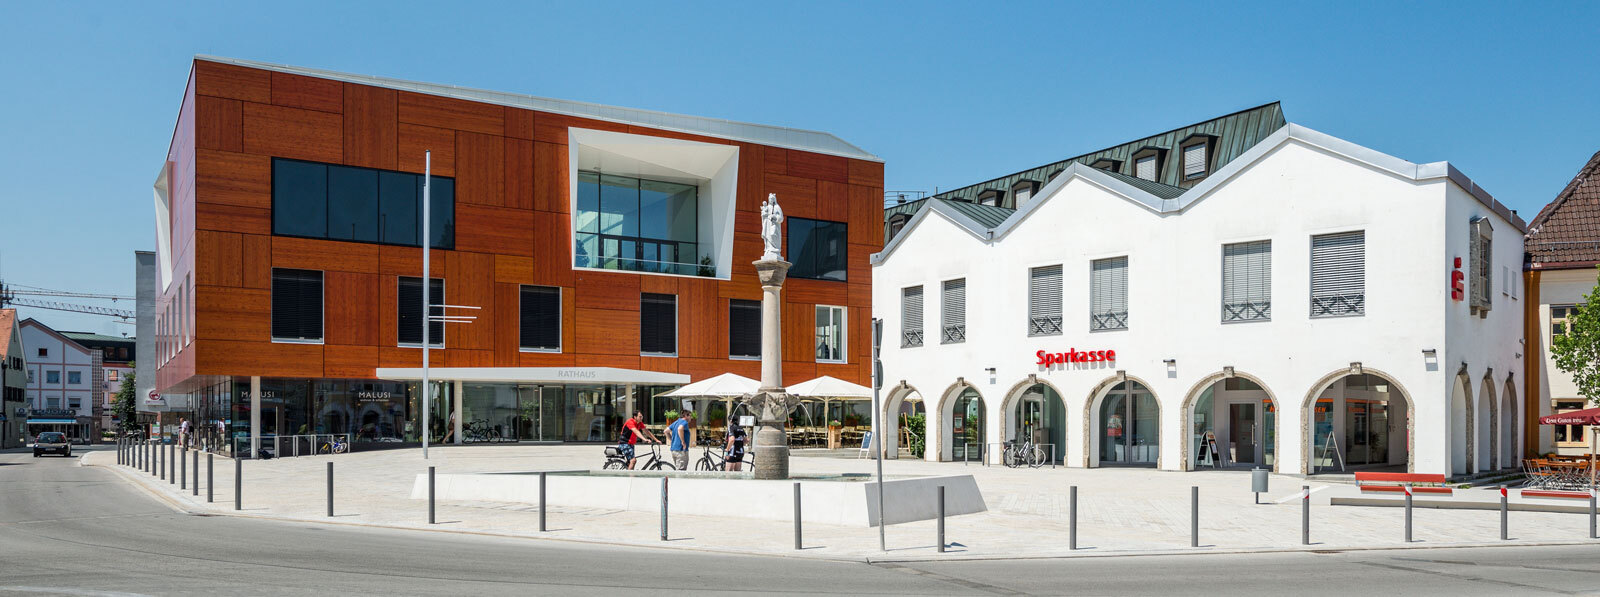 Rathaus & Sparkasse in Bad Aibling